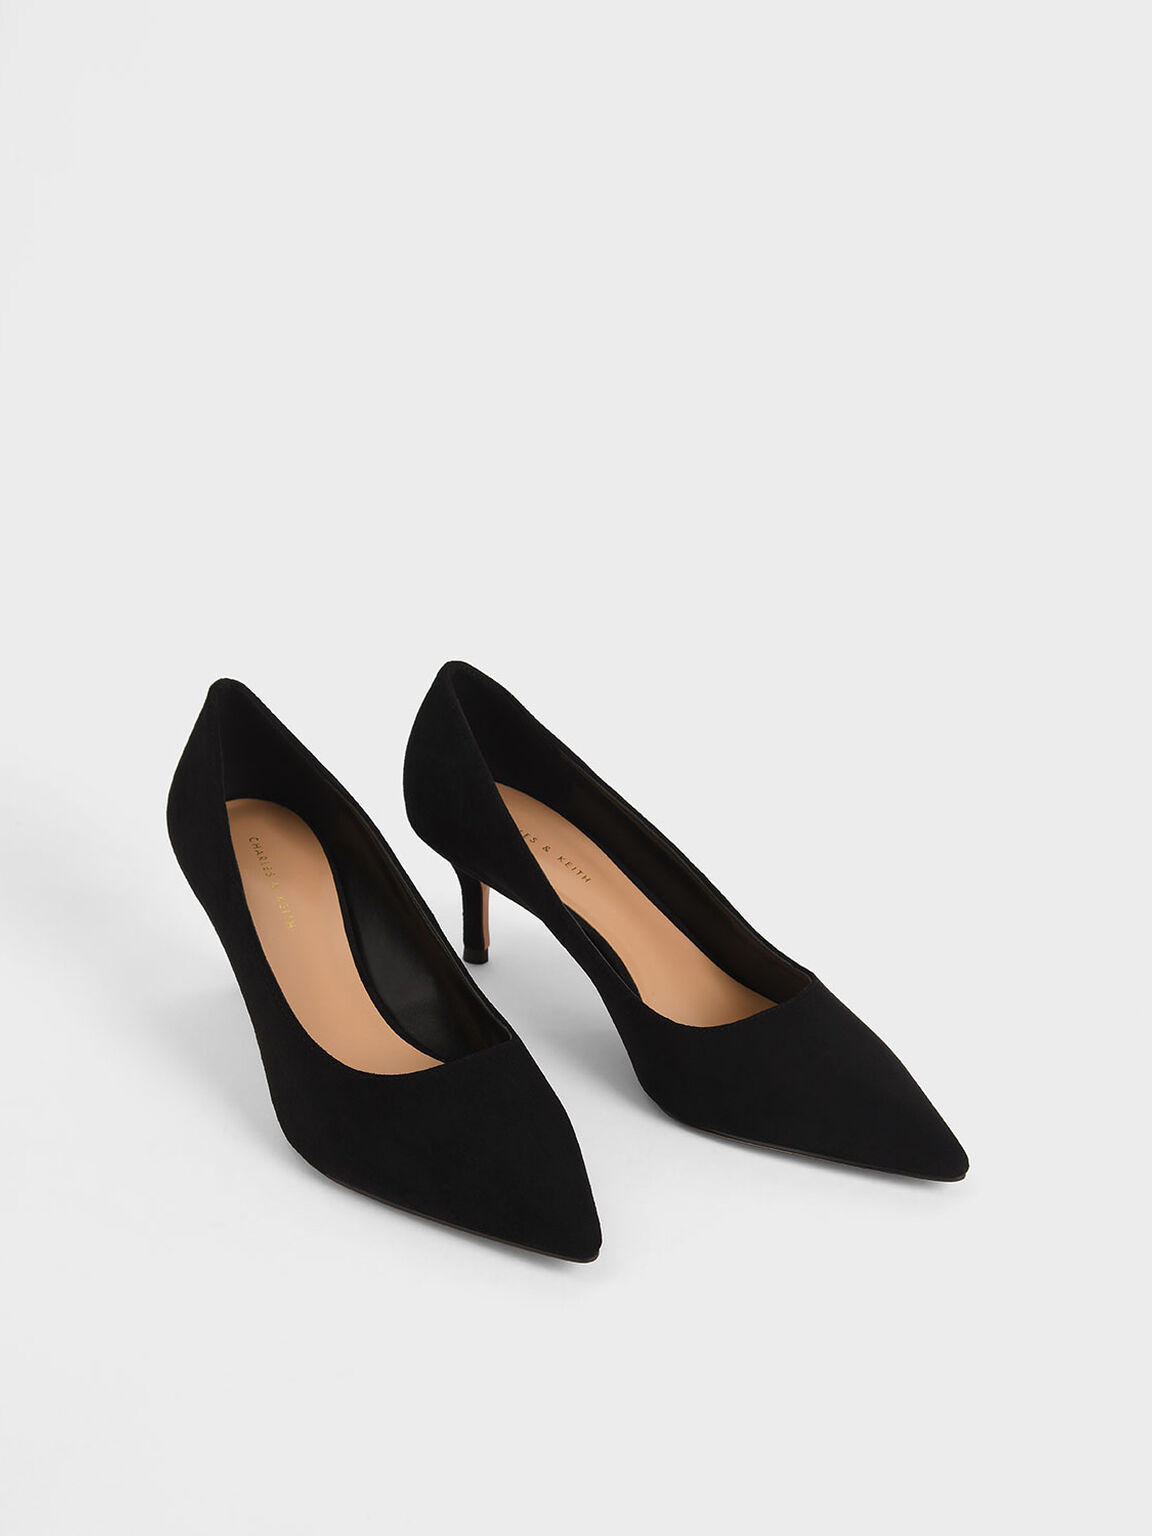 Textured Pointed Toe Pumps, Black Textured, hi-res